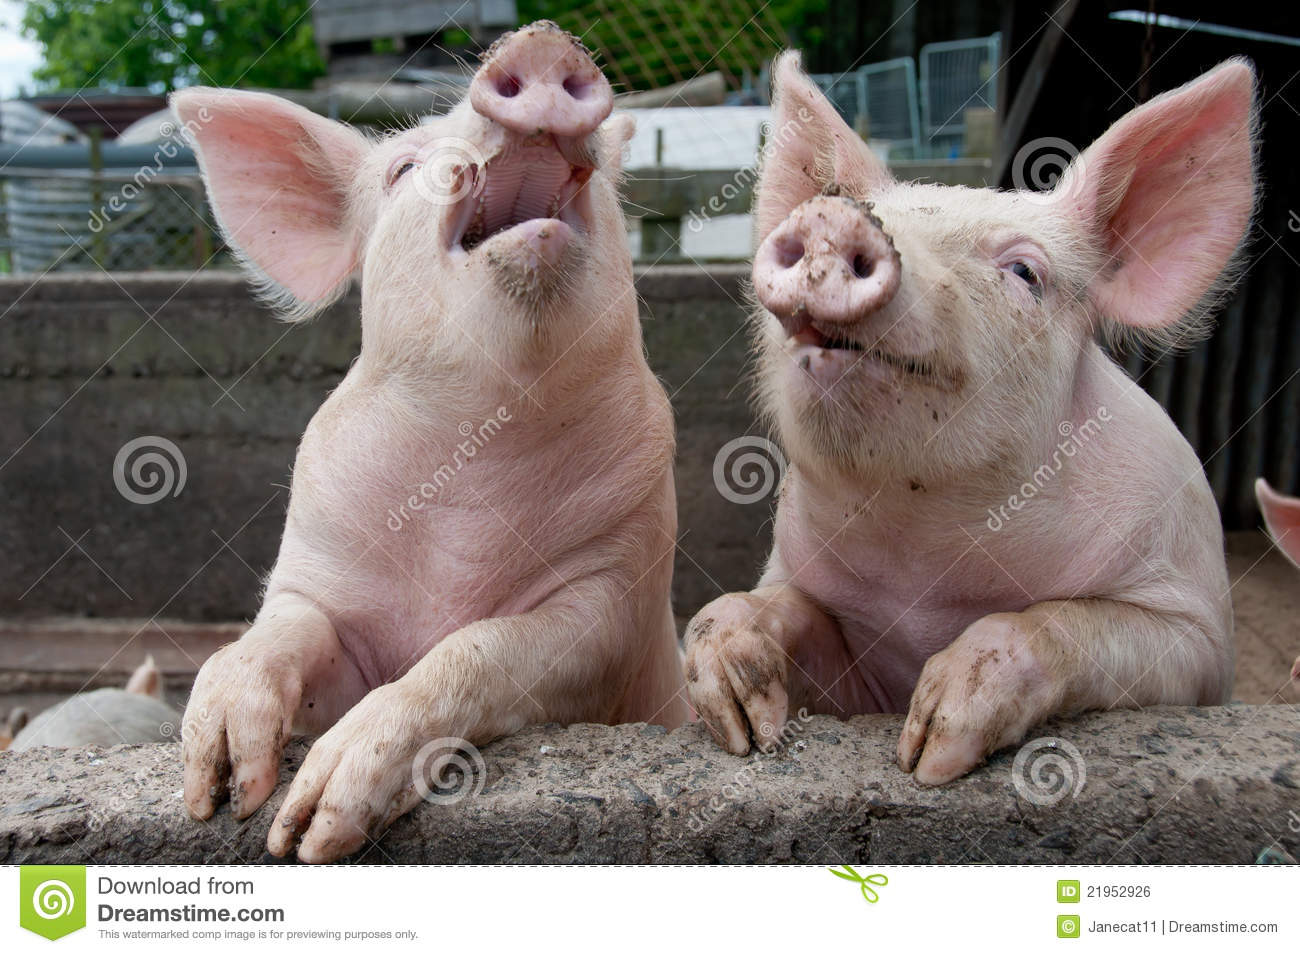 Pigs in pig sty being funny by climbing up on side and looking like ...